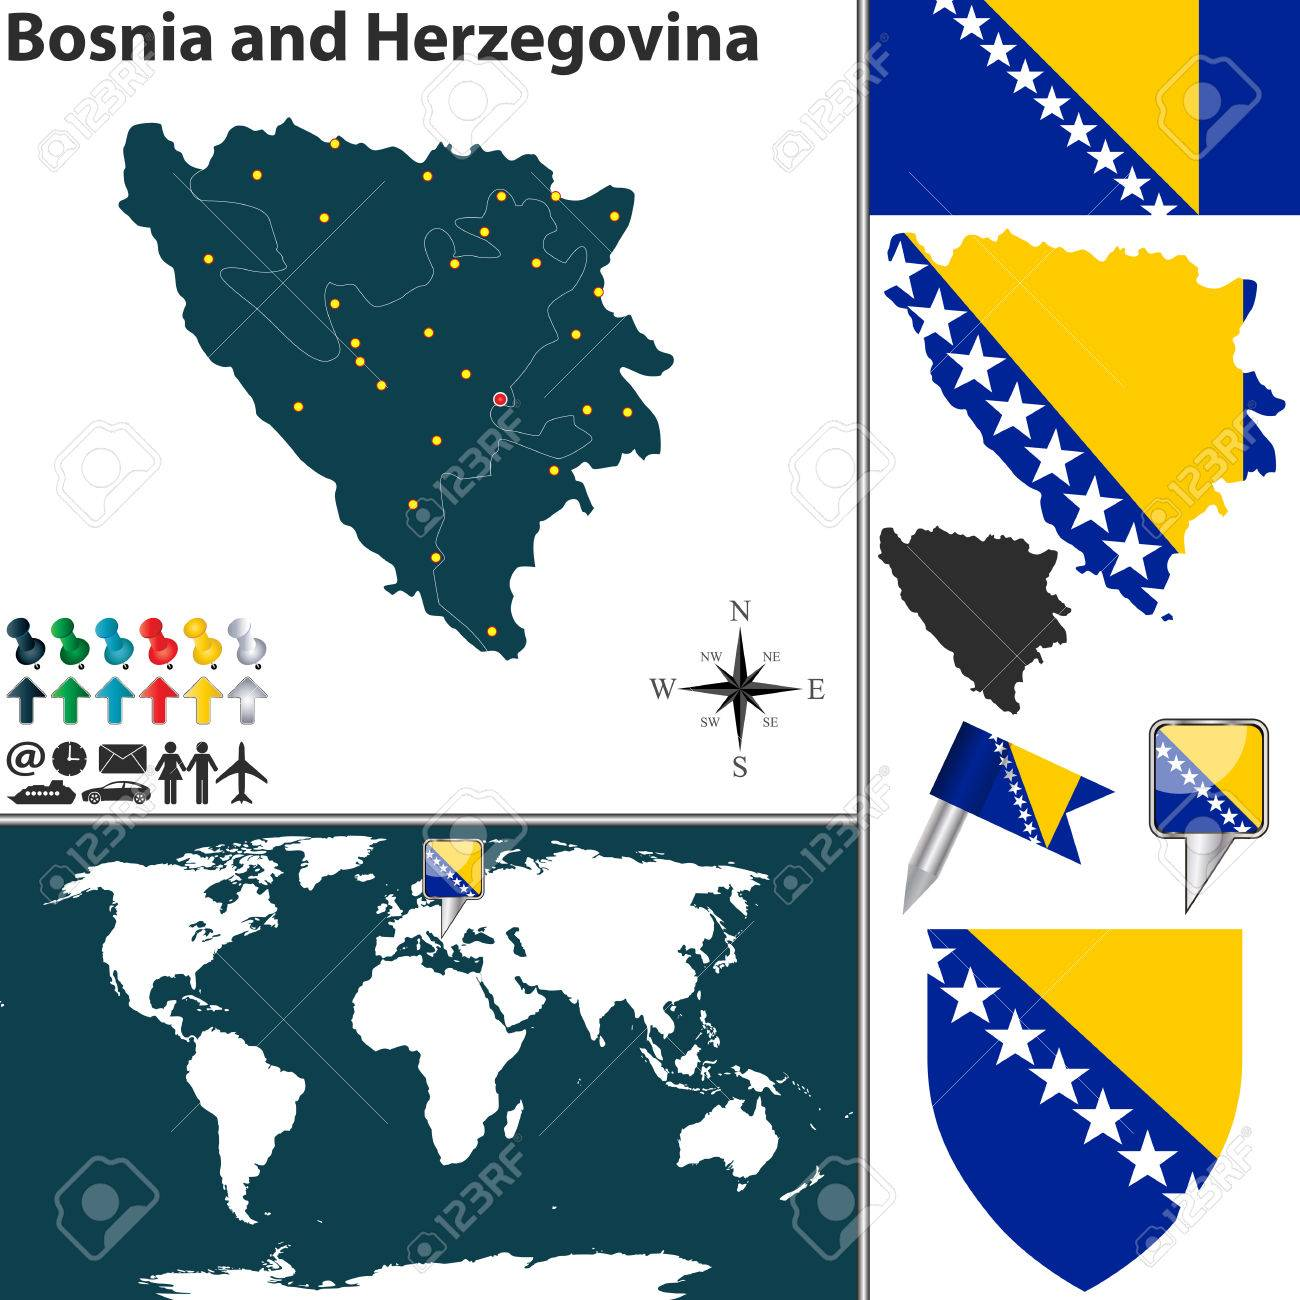 Vector Map Of Bosnia And Herzegovina With Regions Coat Of Arms Royalty Free Cliparts Vectors And Stock Illustration Image 37208080